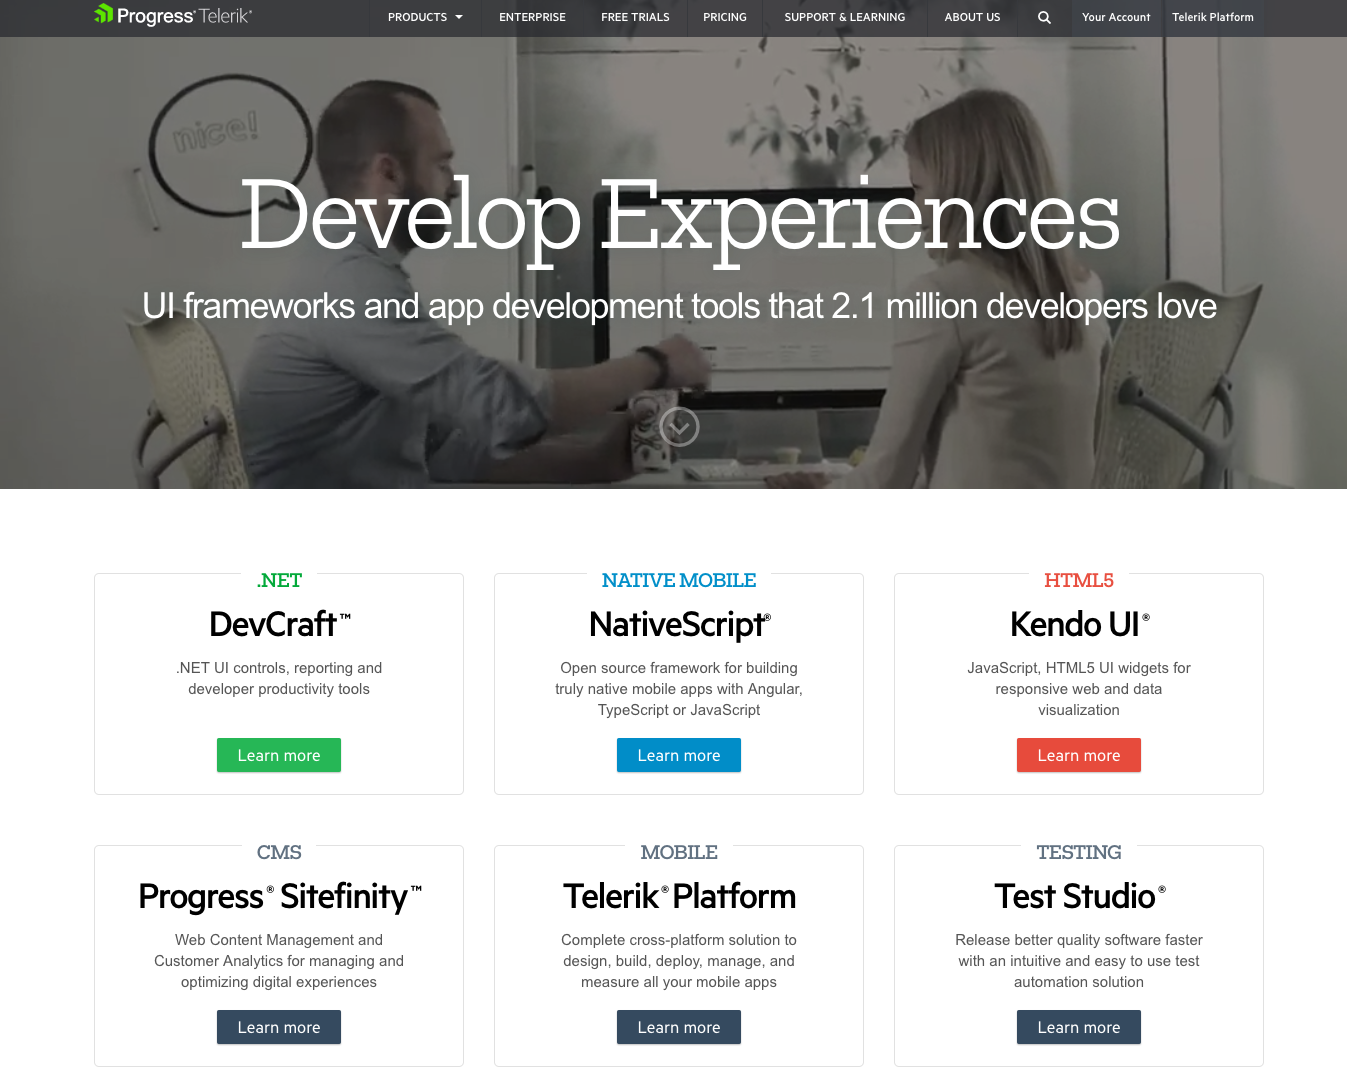 Telerik by Progress homepage web design